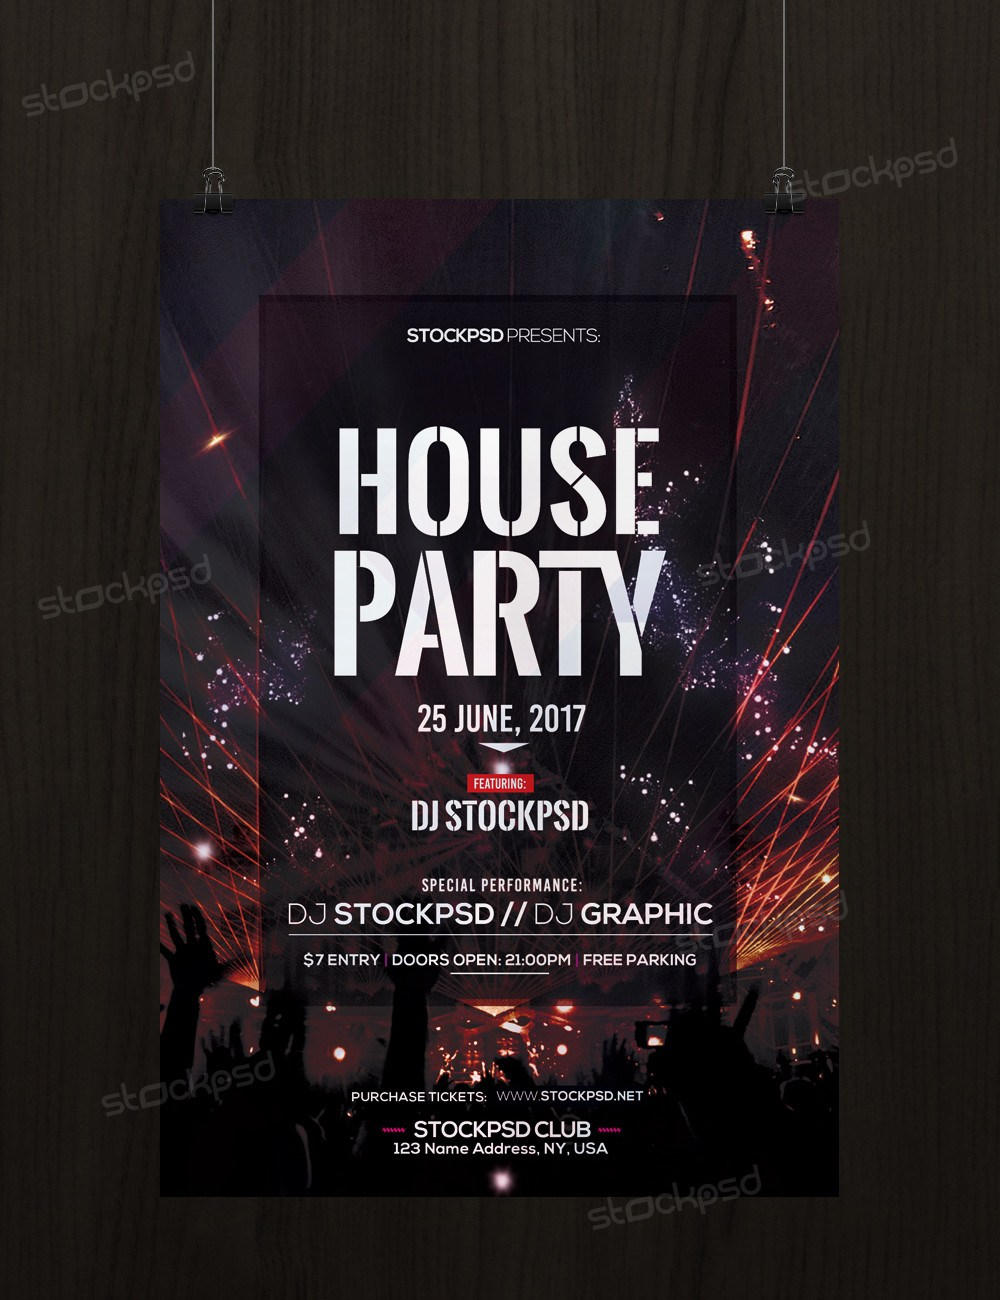 House Party Download Free Psd Flyer Template Freebiedesign